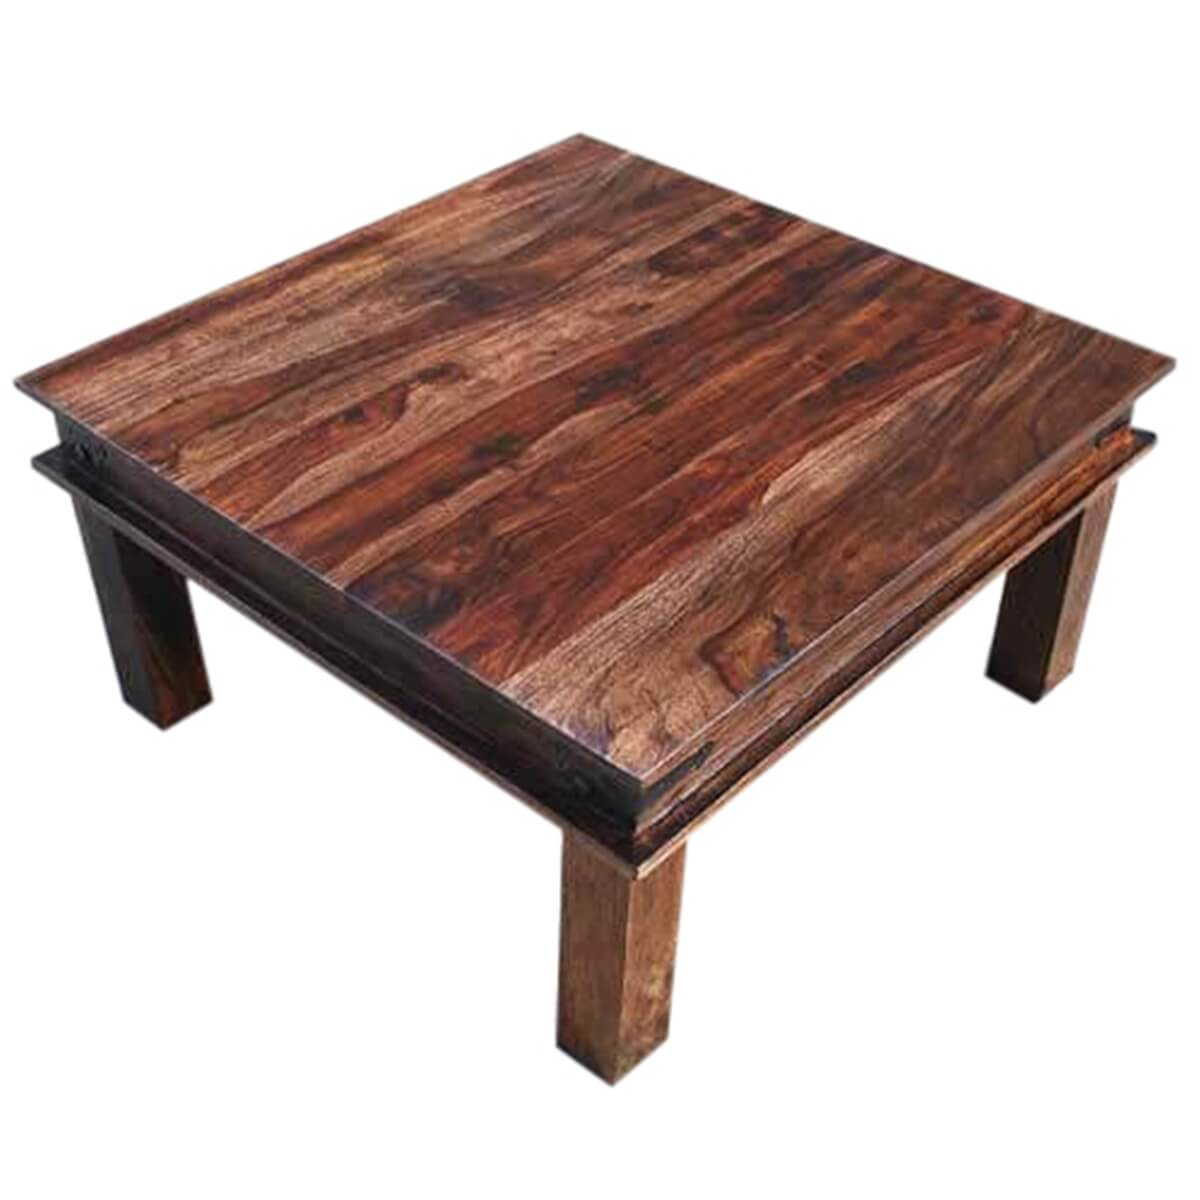 Beautiful Shaker Style Espresso Wood Metal Accents Square Cocktail Coffee Table